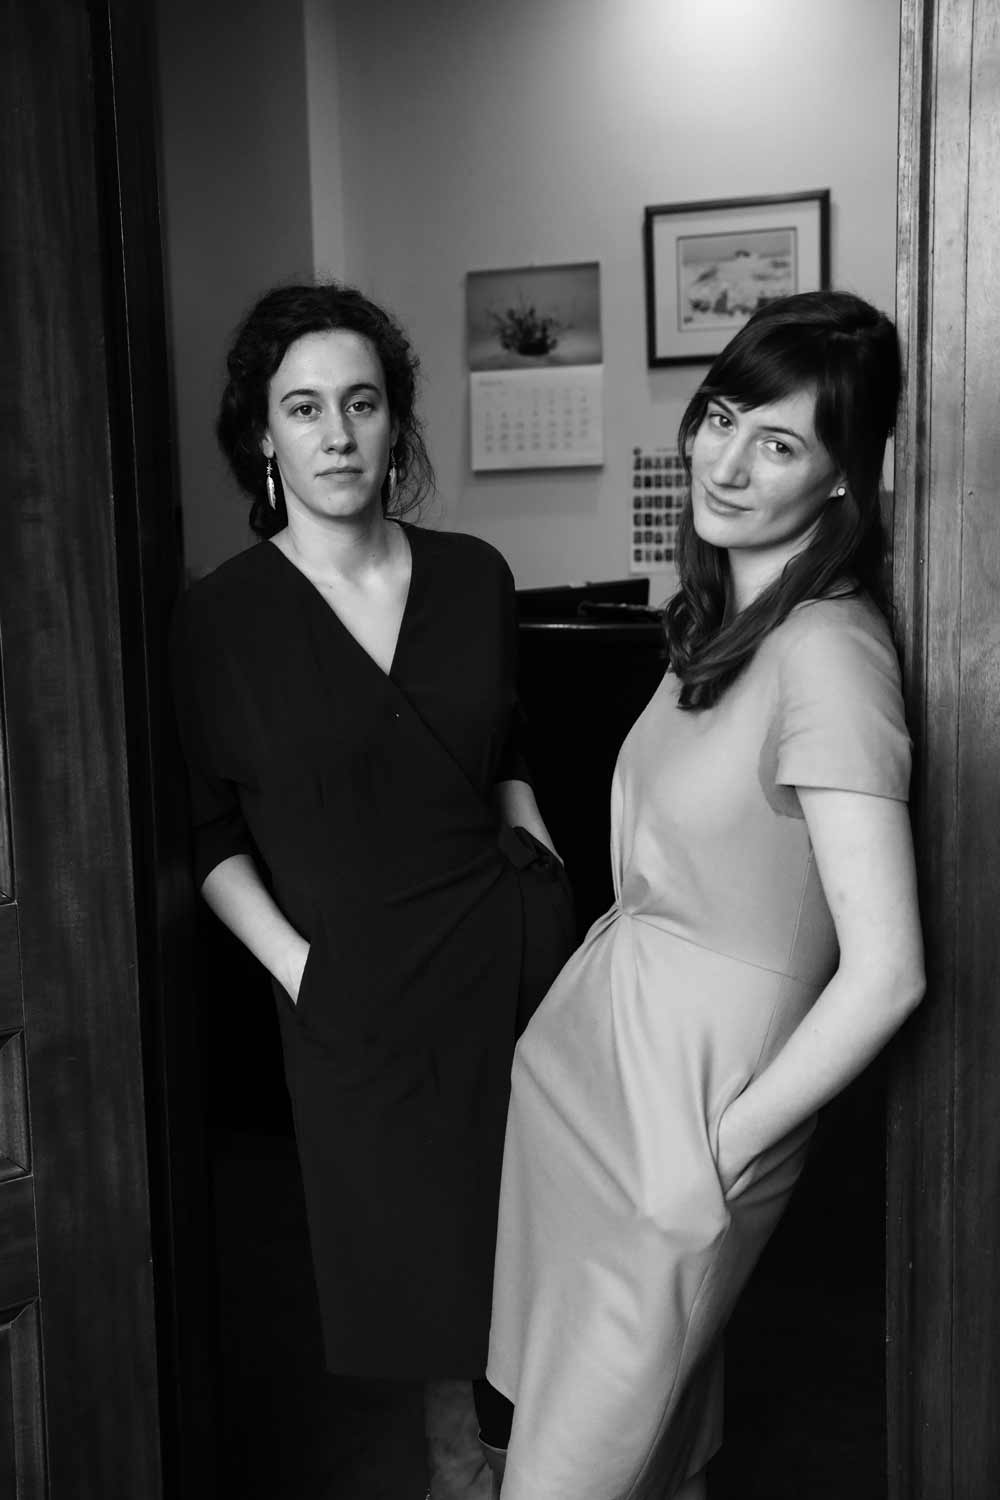 Laura Chartier (left) and Molly Carver, Legislative Aides